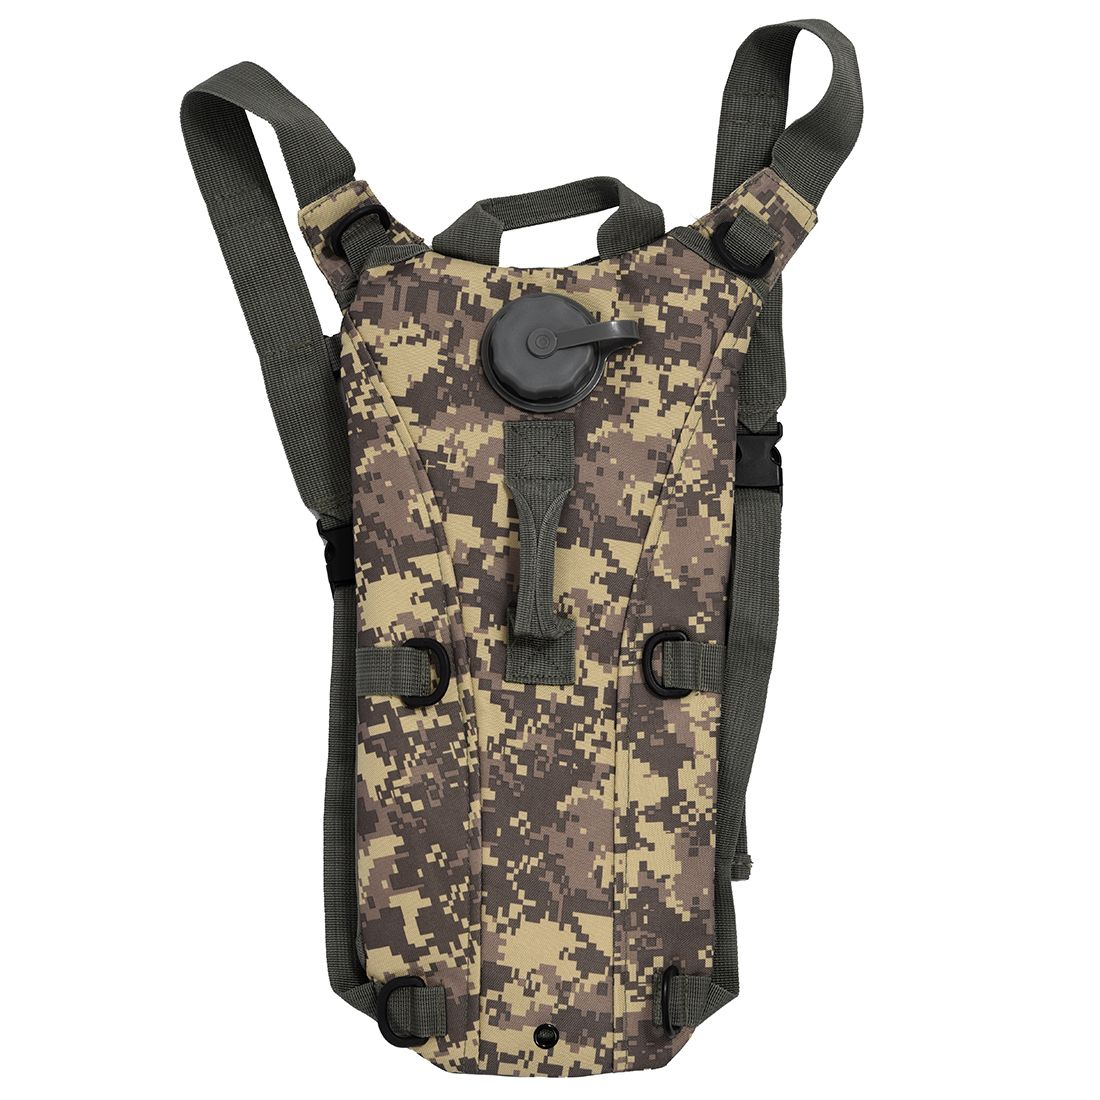 Camouflage Water Bladder Bag Hydration System Backpack Pack Hiking Camping